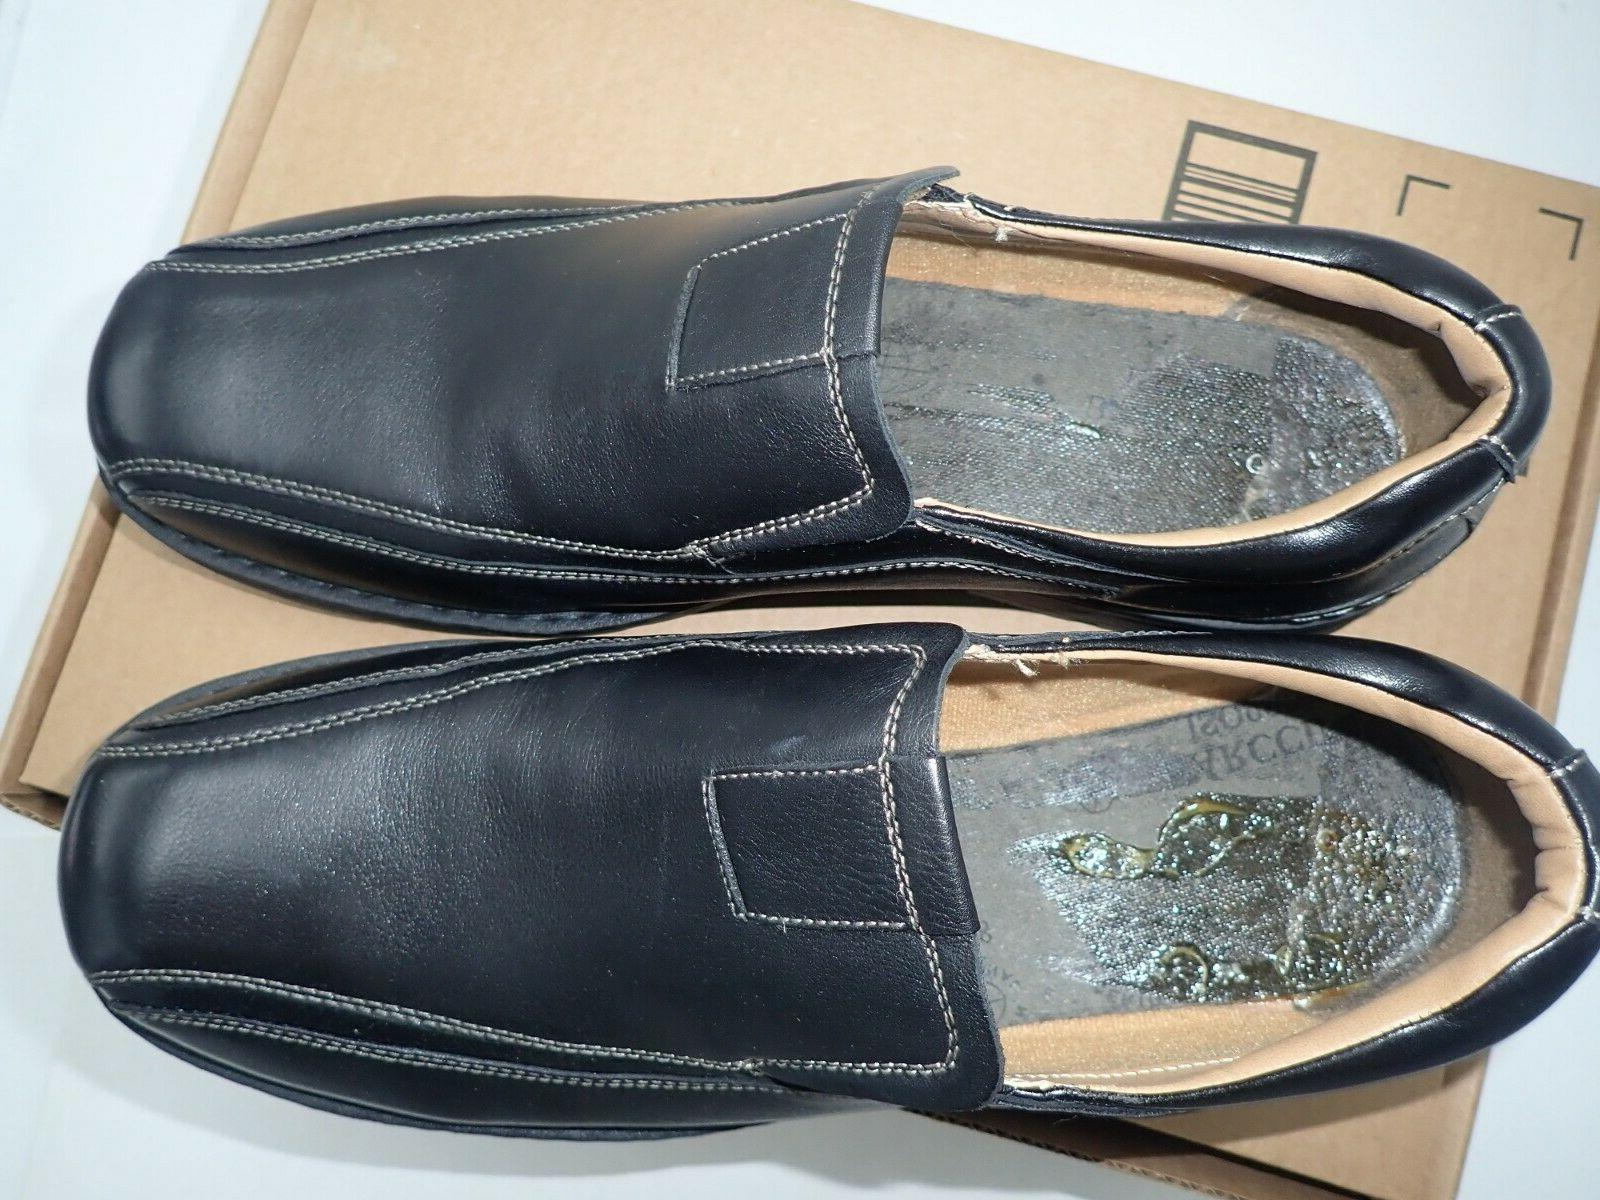 Dockers Agent Leather Dress Loafer Black, 14 W